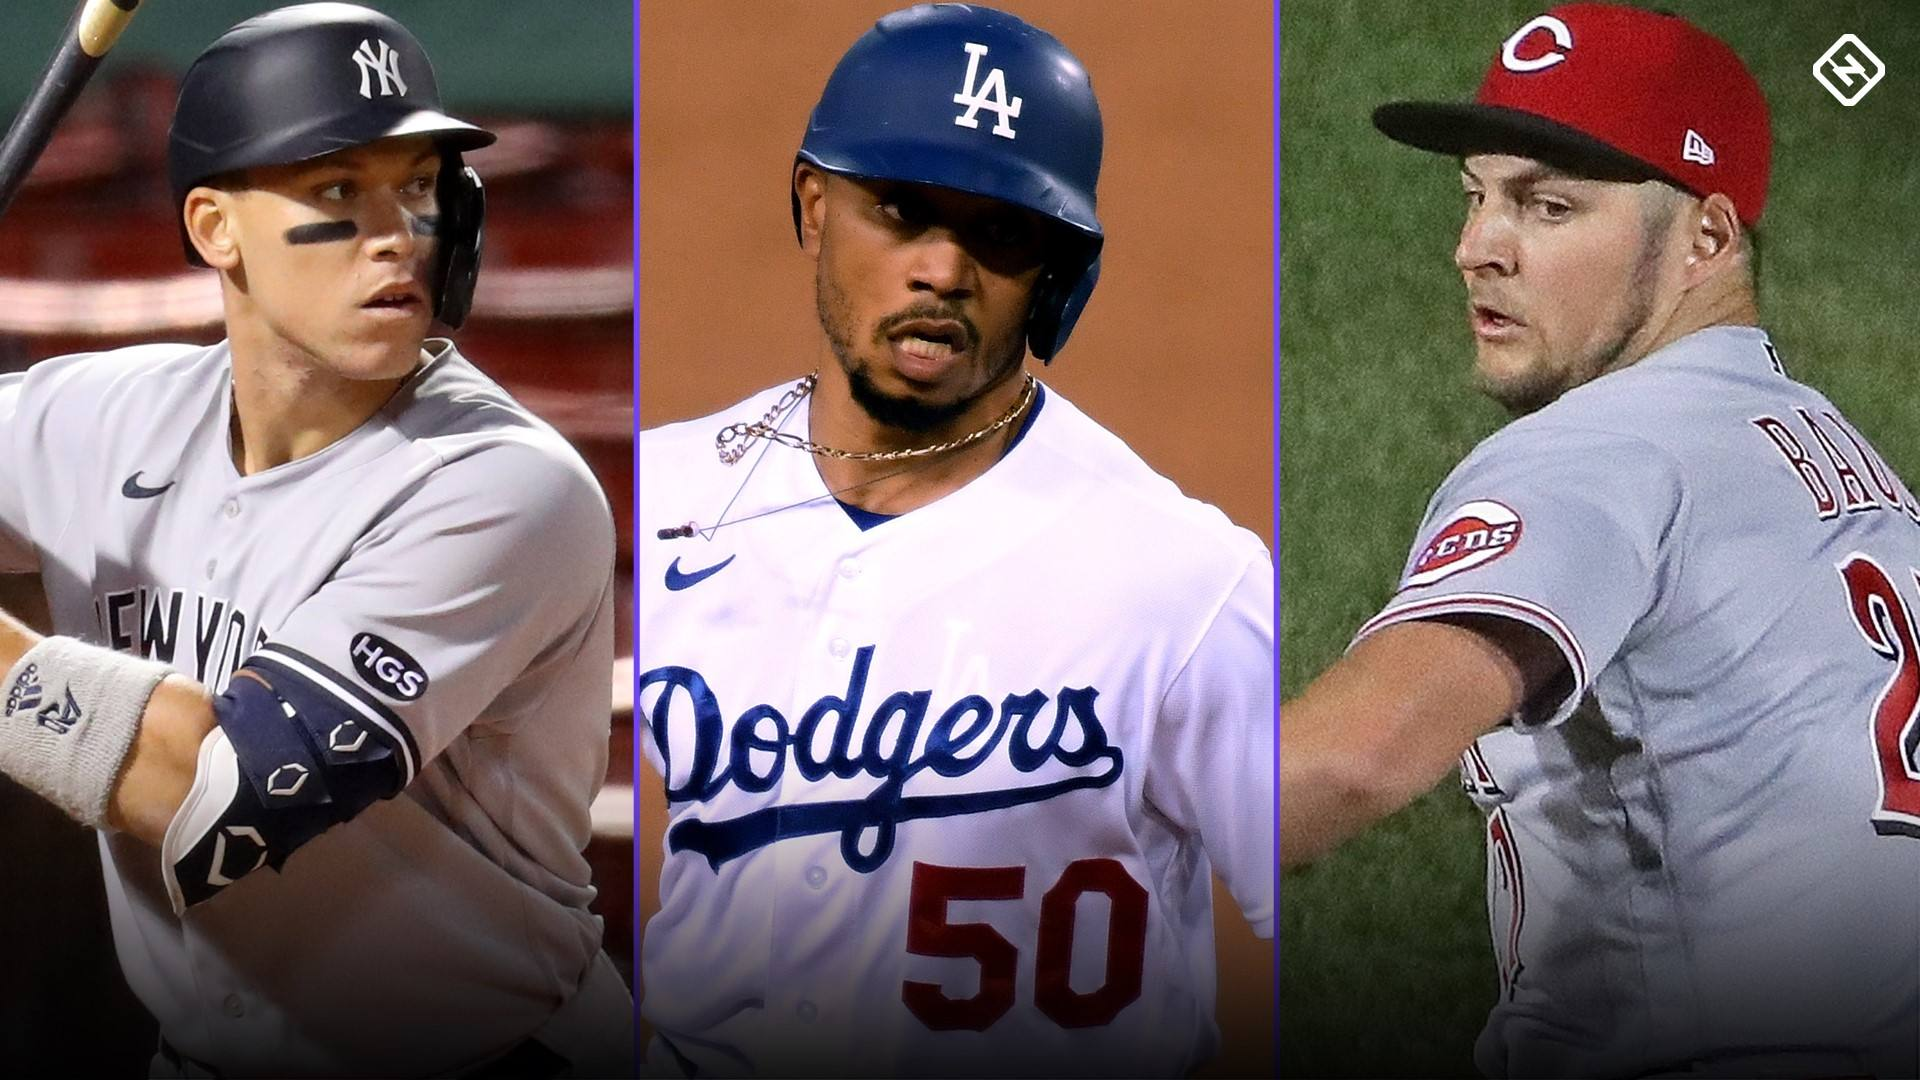 MLB playoffs 2020: Everything you need to know for regular season